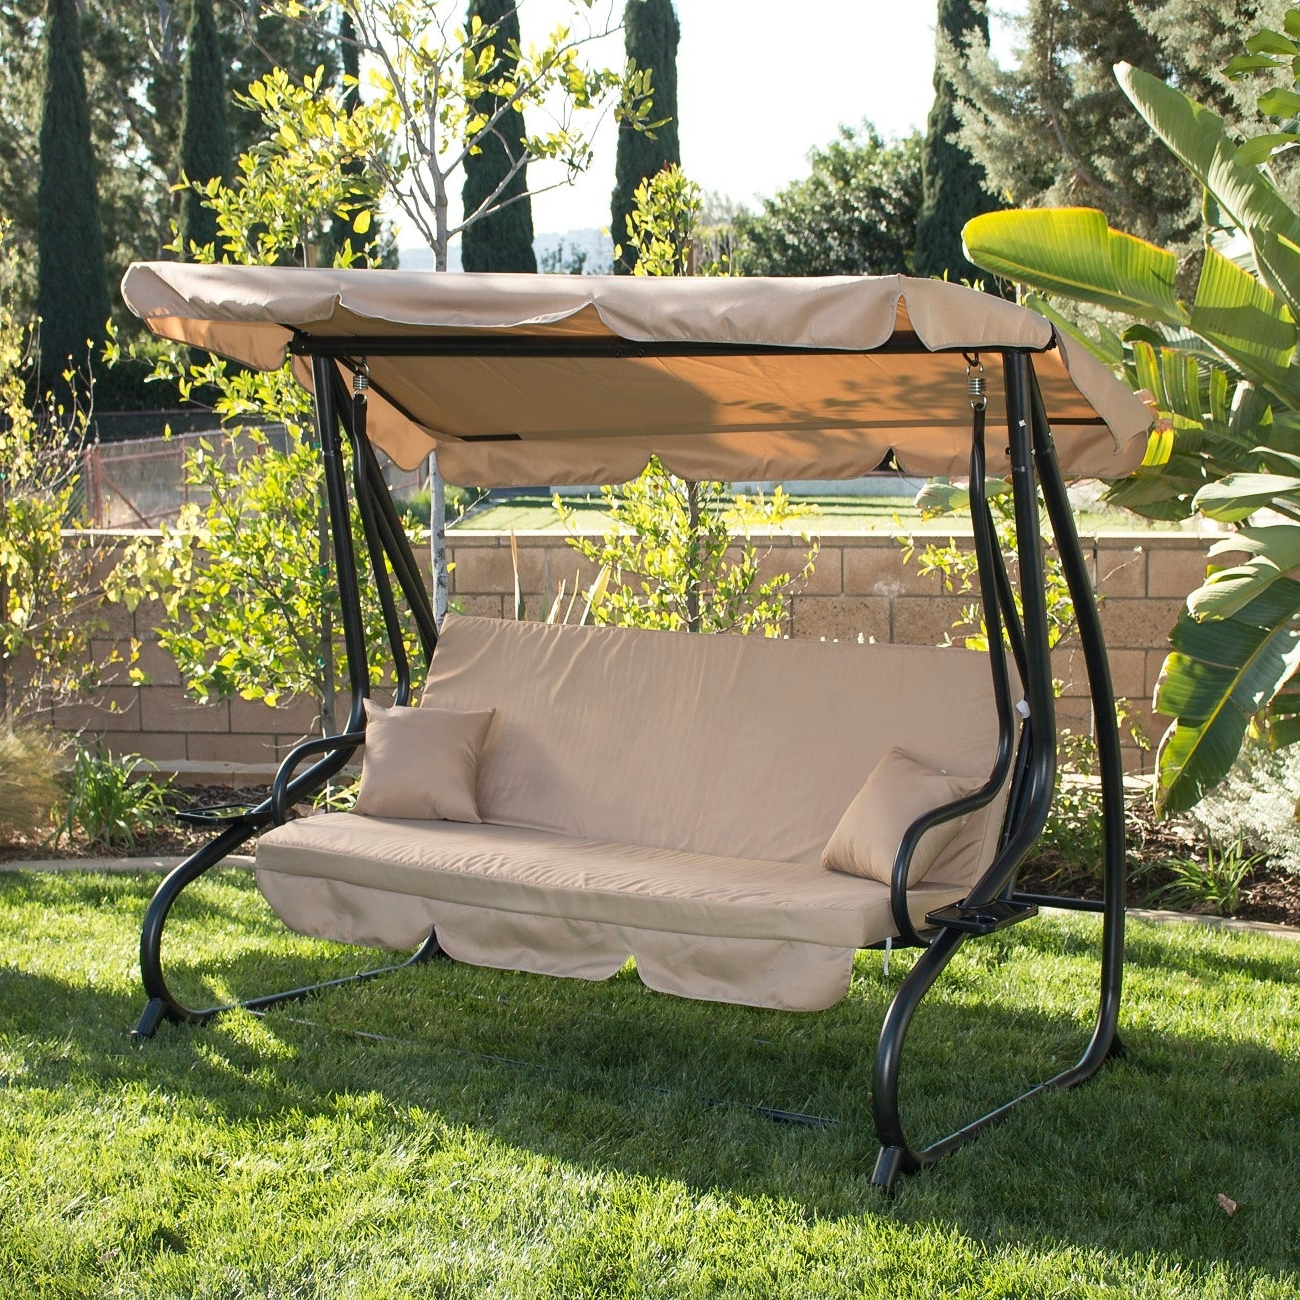 Canopy Patio Porch Swings With Pillows And Cup Holders Throughout Well Known Belleze Outdoor Canopy Porch Swing Bed Hammock Tilt Canopy Sun Shade Steel Frame (View 6 of 25)